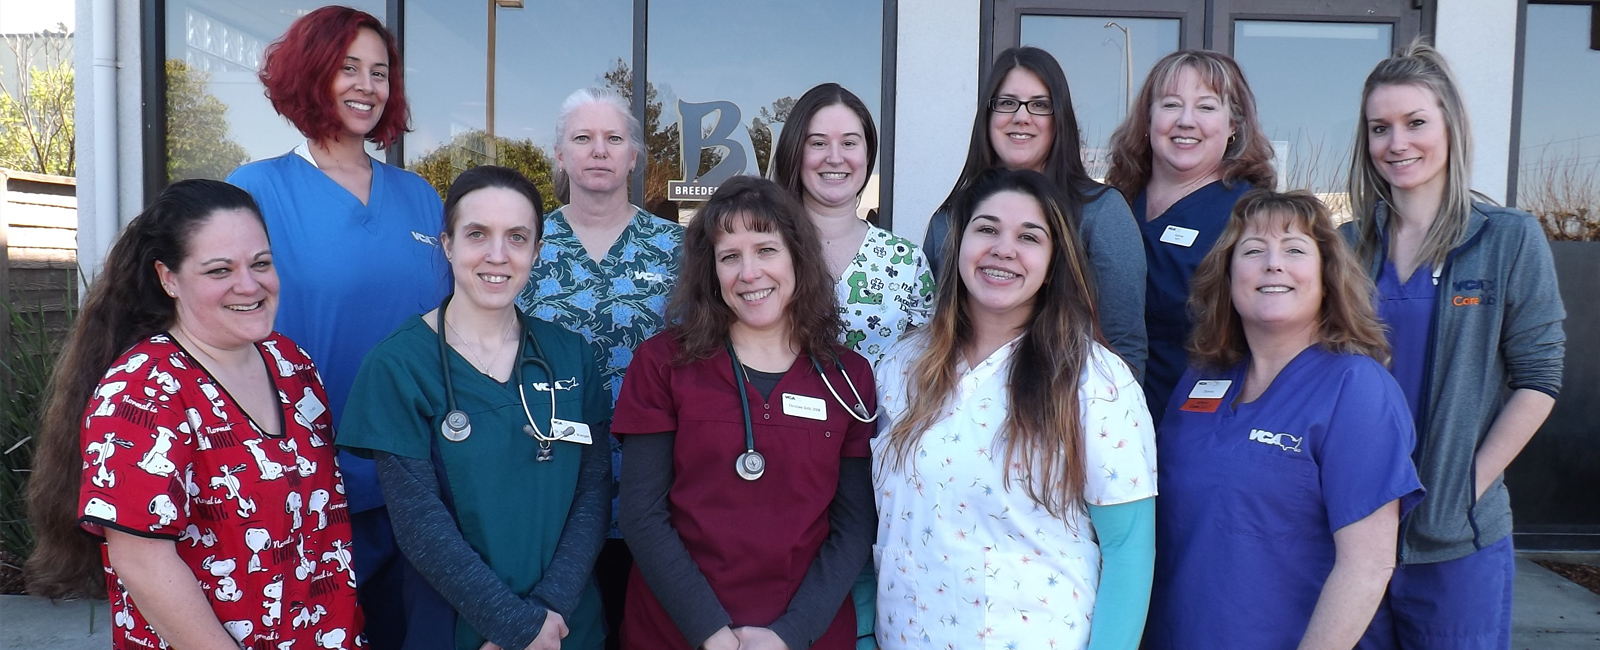 Team Picture of Sequoia Valley Animal Hospital